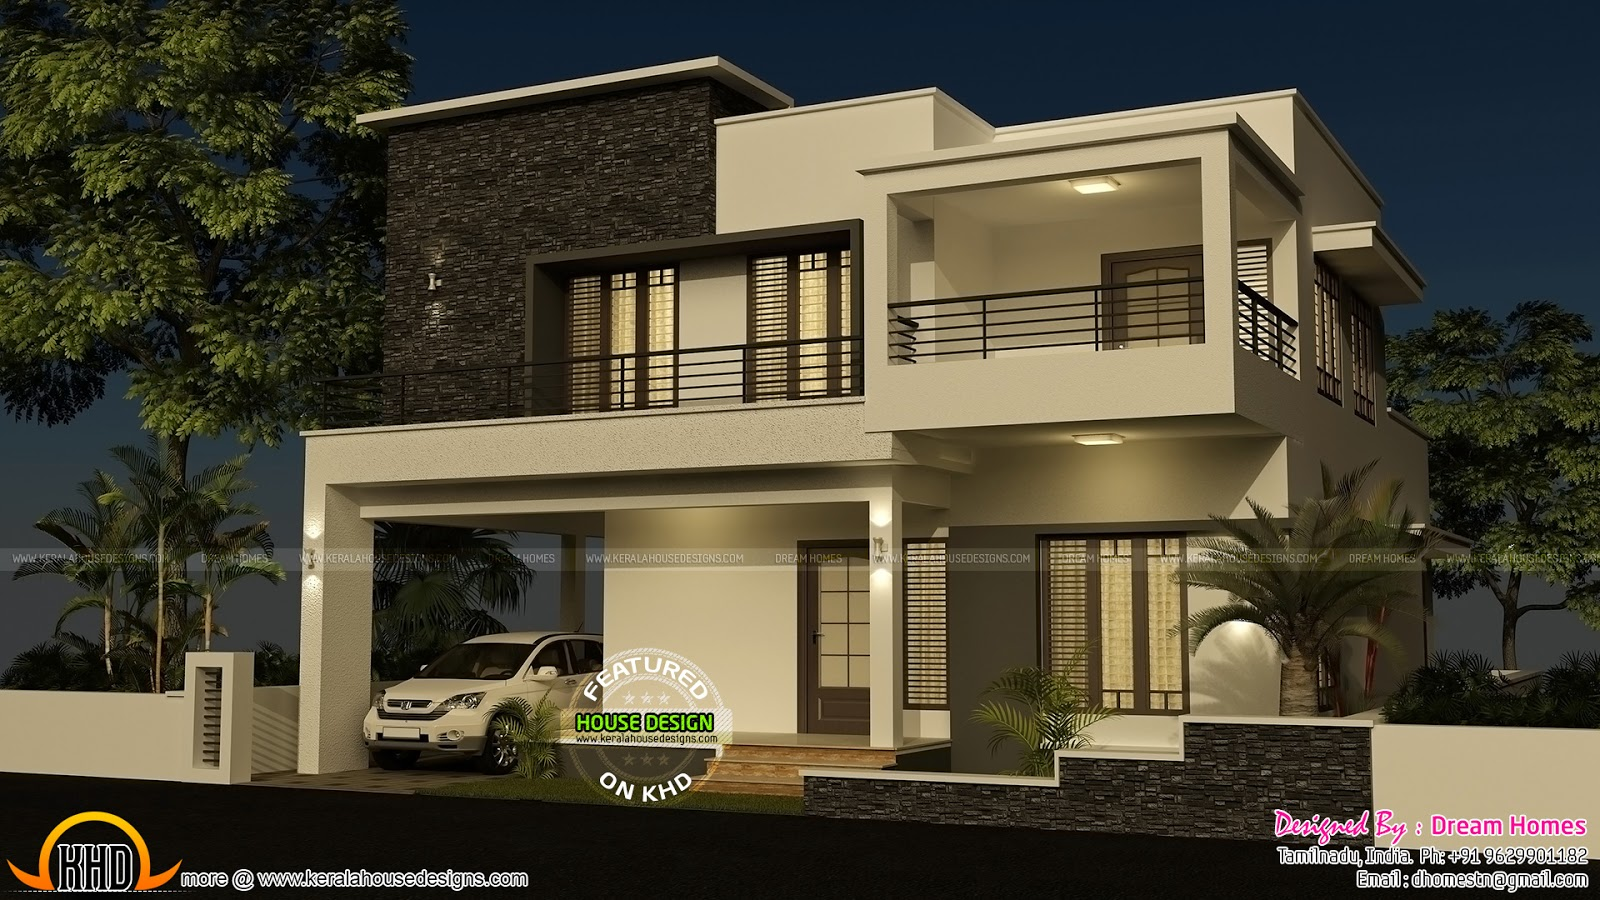 4 Bedroom Contemporary House Plans Of Residential House Plans 4 Bedrooms  Modern 3 Bedroom House